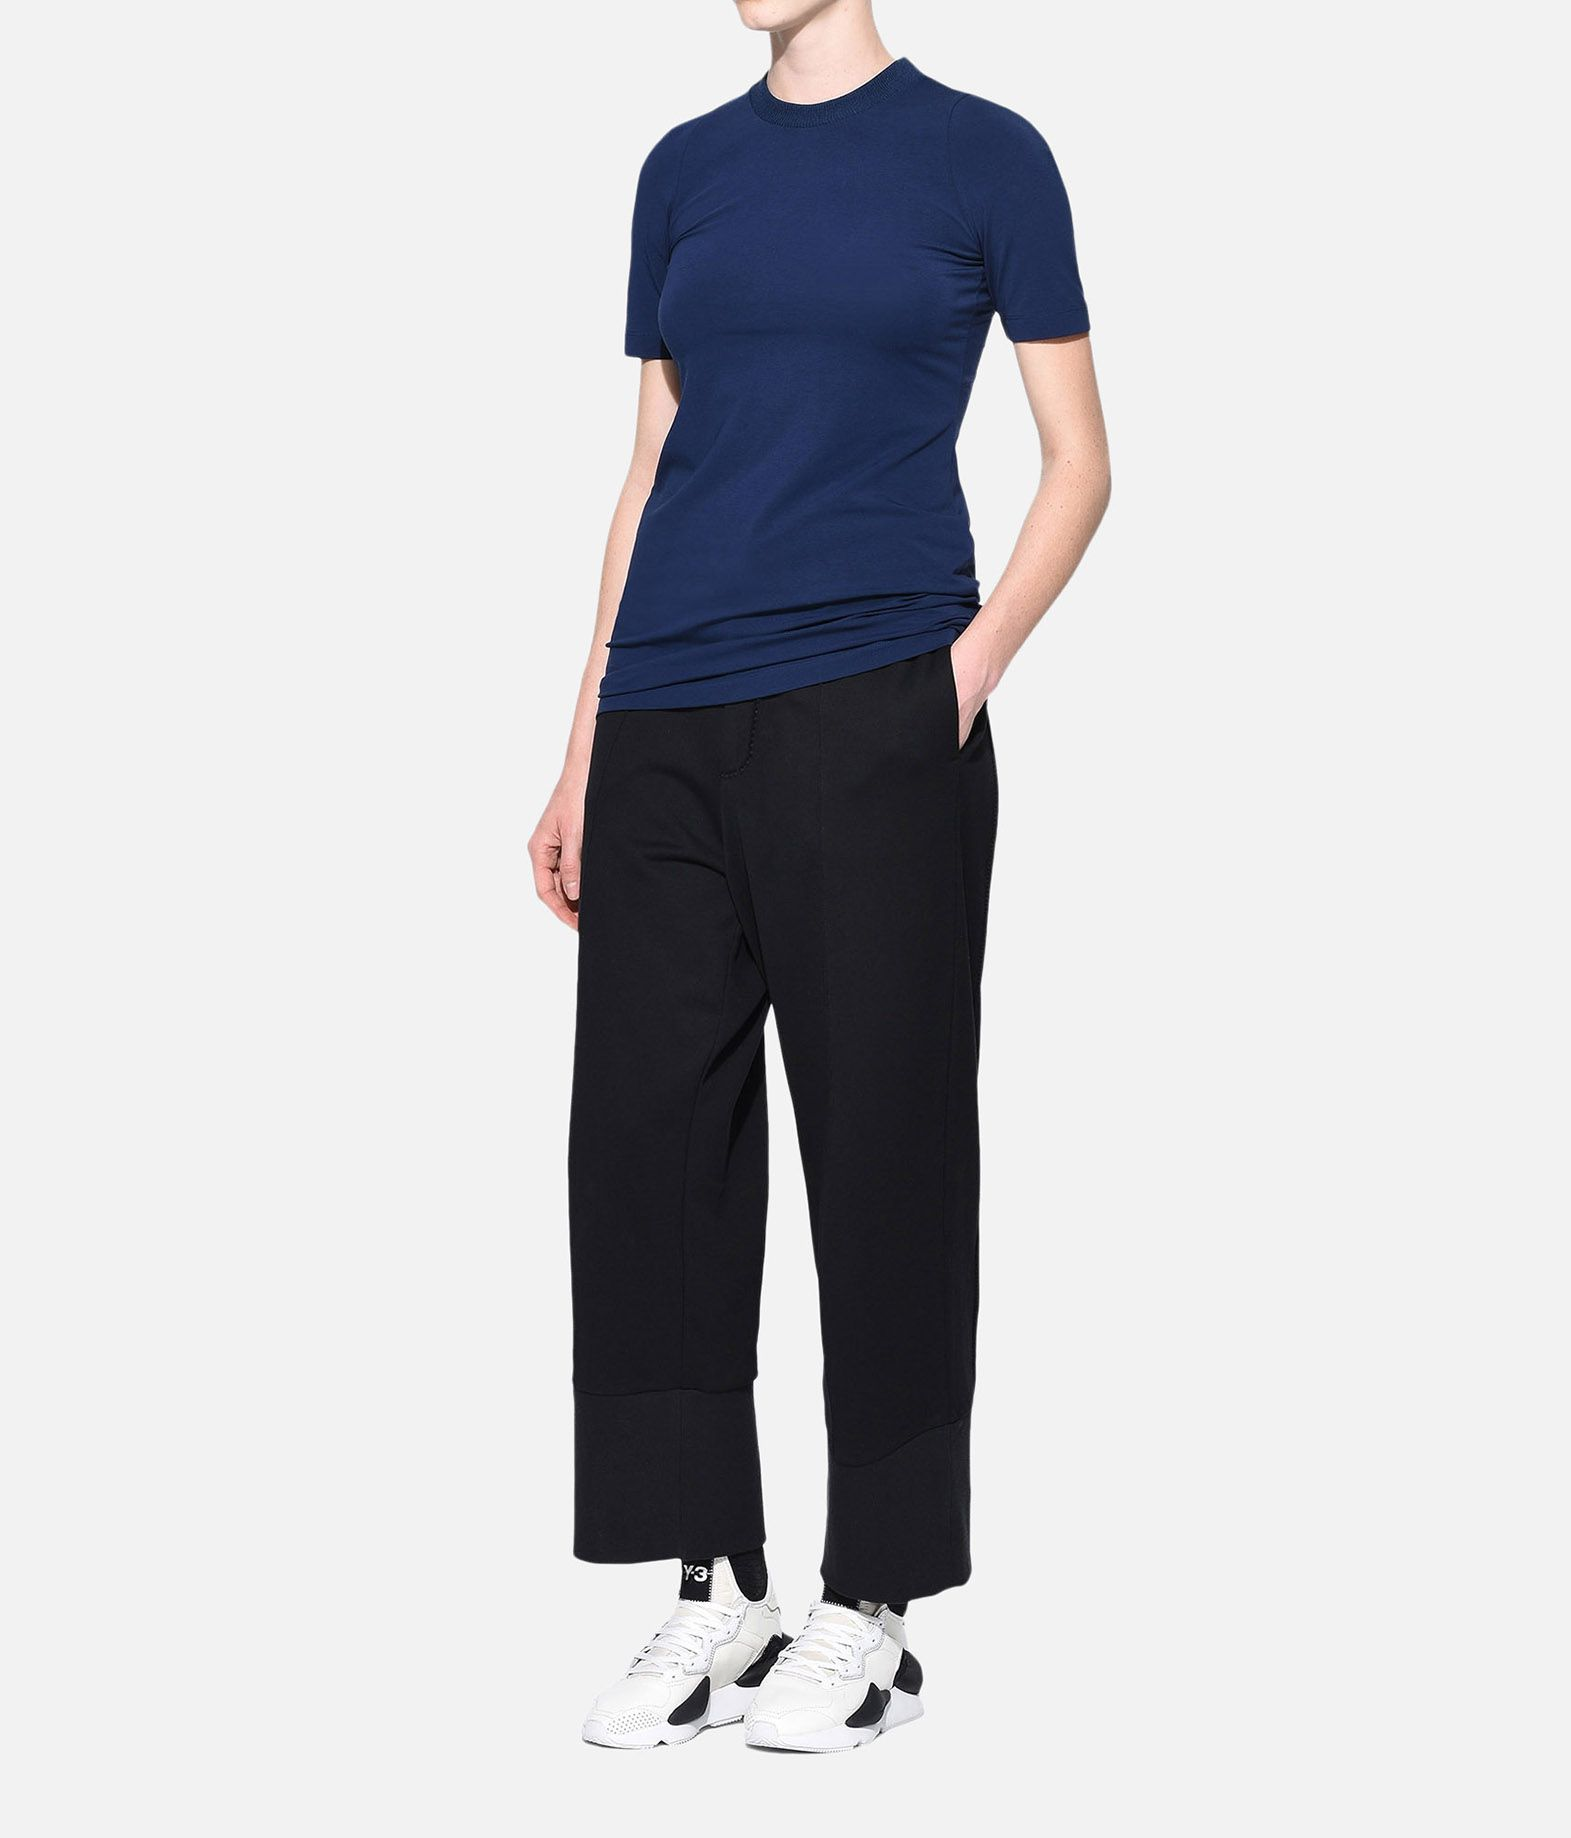 Y-3 Y-3 Prime Tee Short sleeve t-shirt Woman a